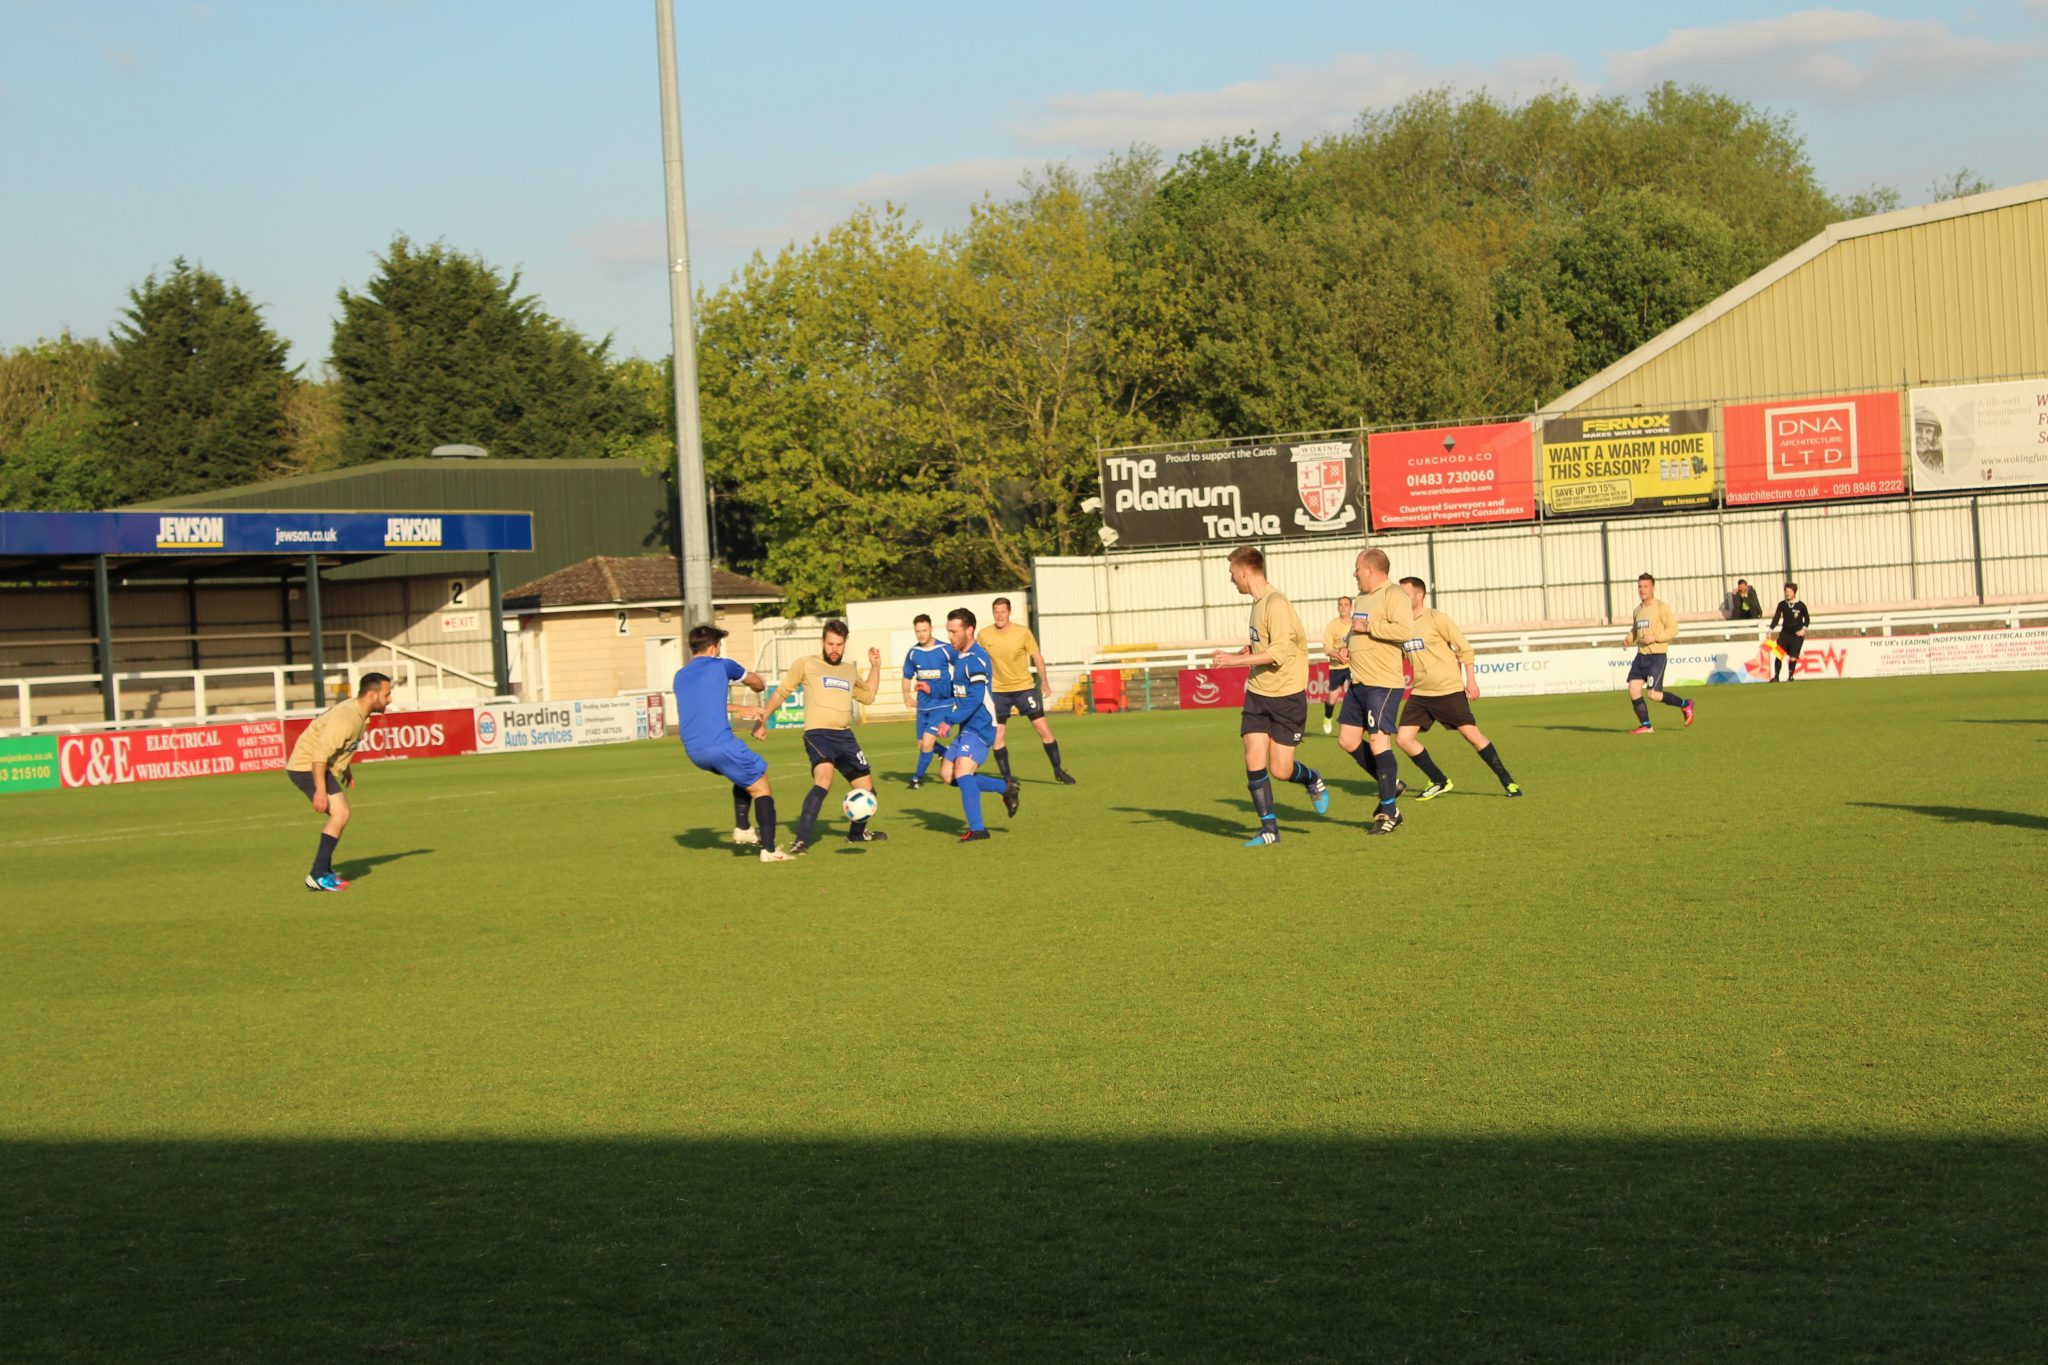 JEWSON SCORES FUNDRAISING GOAL IN CHARITY FOOTBALL MATCH